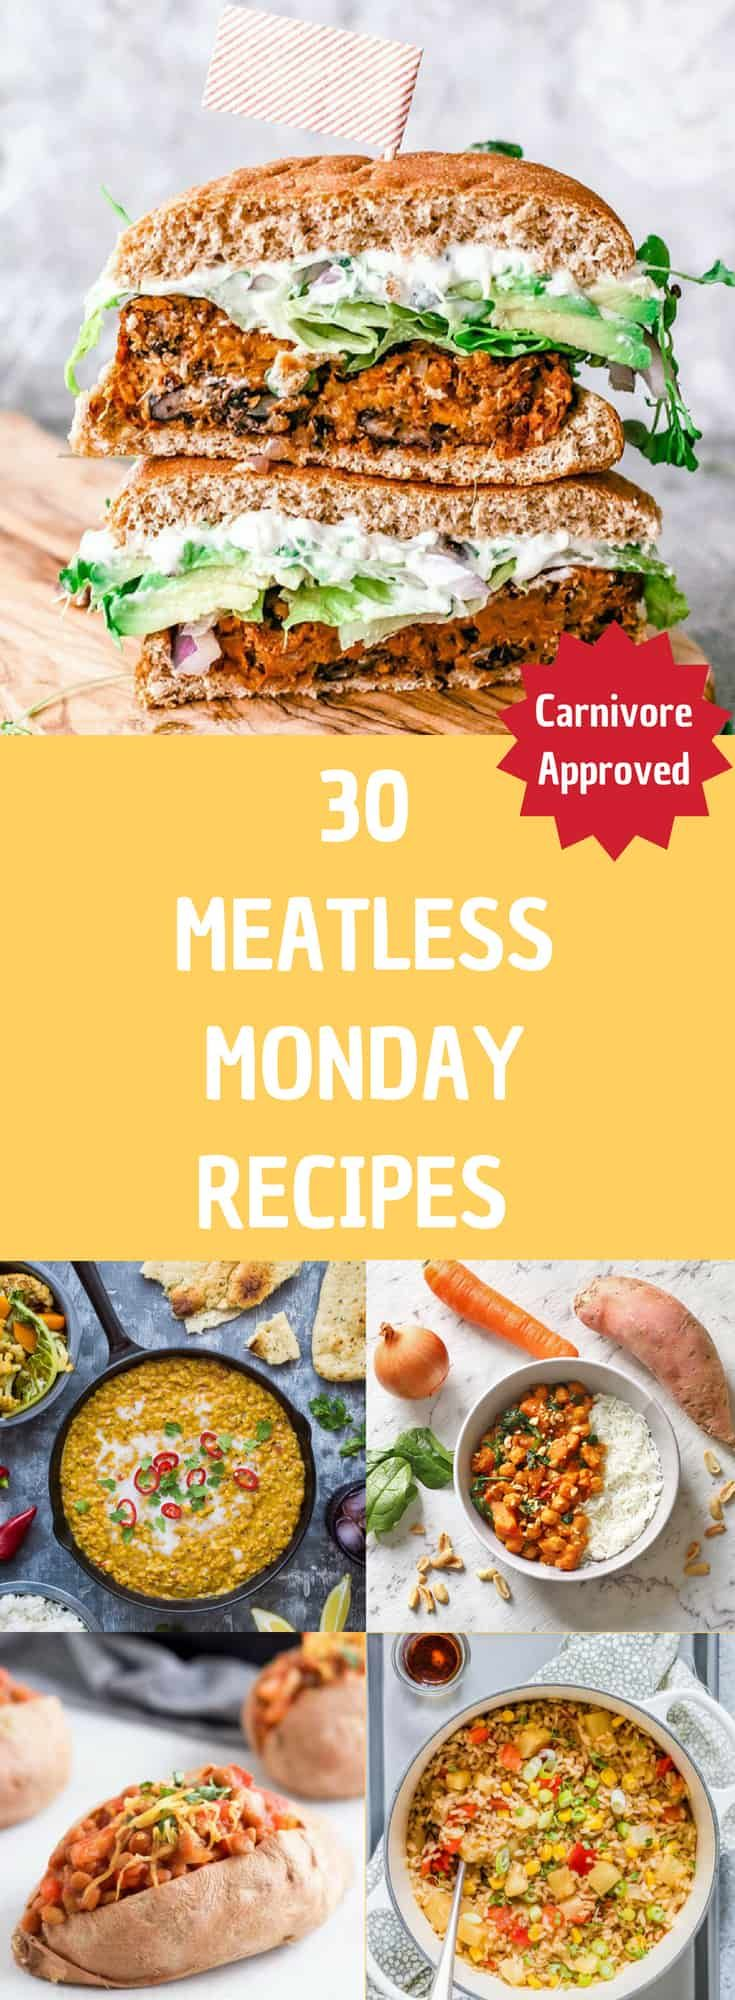 30 Meatless Monday Recipes Your Whole Family Will Love images